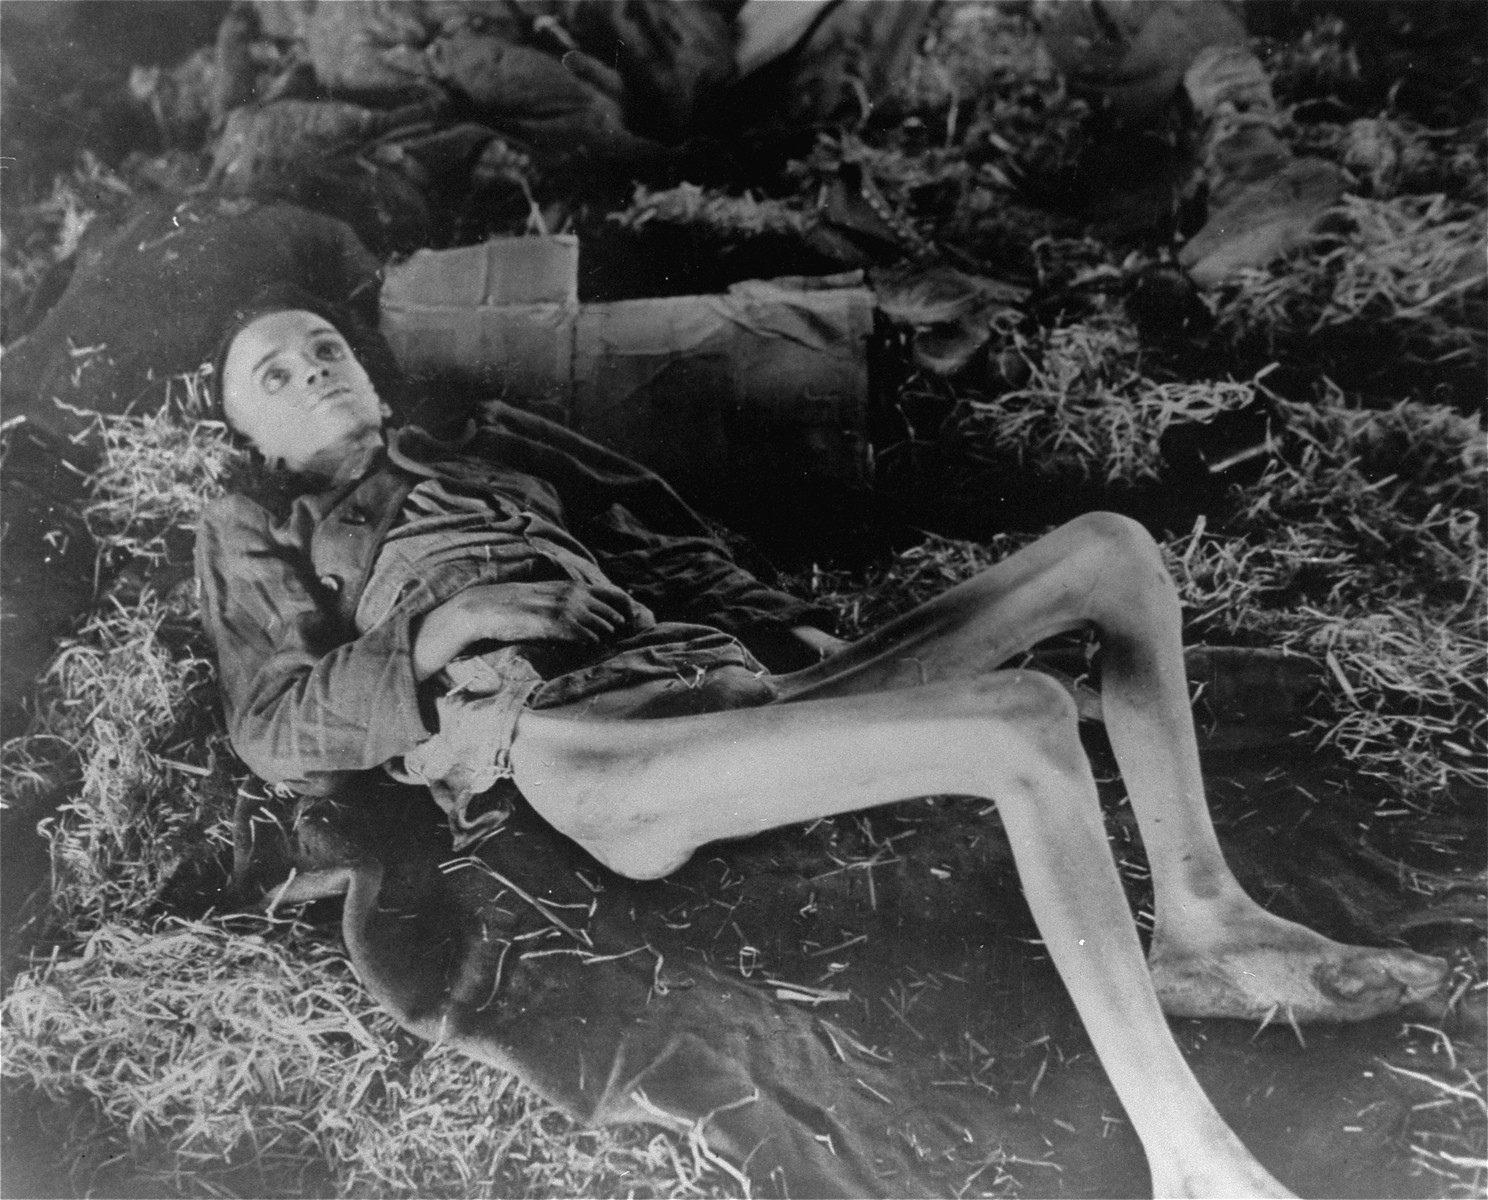 "An emaciated survivor lies inside a barrack on a pile of straw in the newly liberated Nordhausen concentration camp.  He died shortly thereafter.  The original caption reads:  ""Lifeless eyes stare from the broken starved body of a slave laborer who died at the Nordhausen camp.  Hundreds of emaciated men, too weak to move, were found on the barracks floor among their dead.  Russian, Polish, French, Beligan, and Italian captives were forced to work for the Hitler war machine until they starved to death or were shot."""